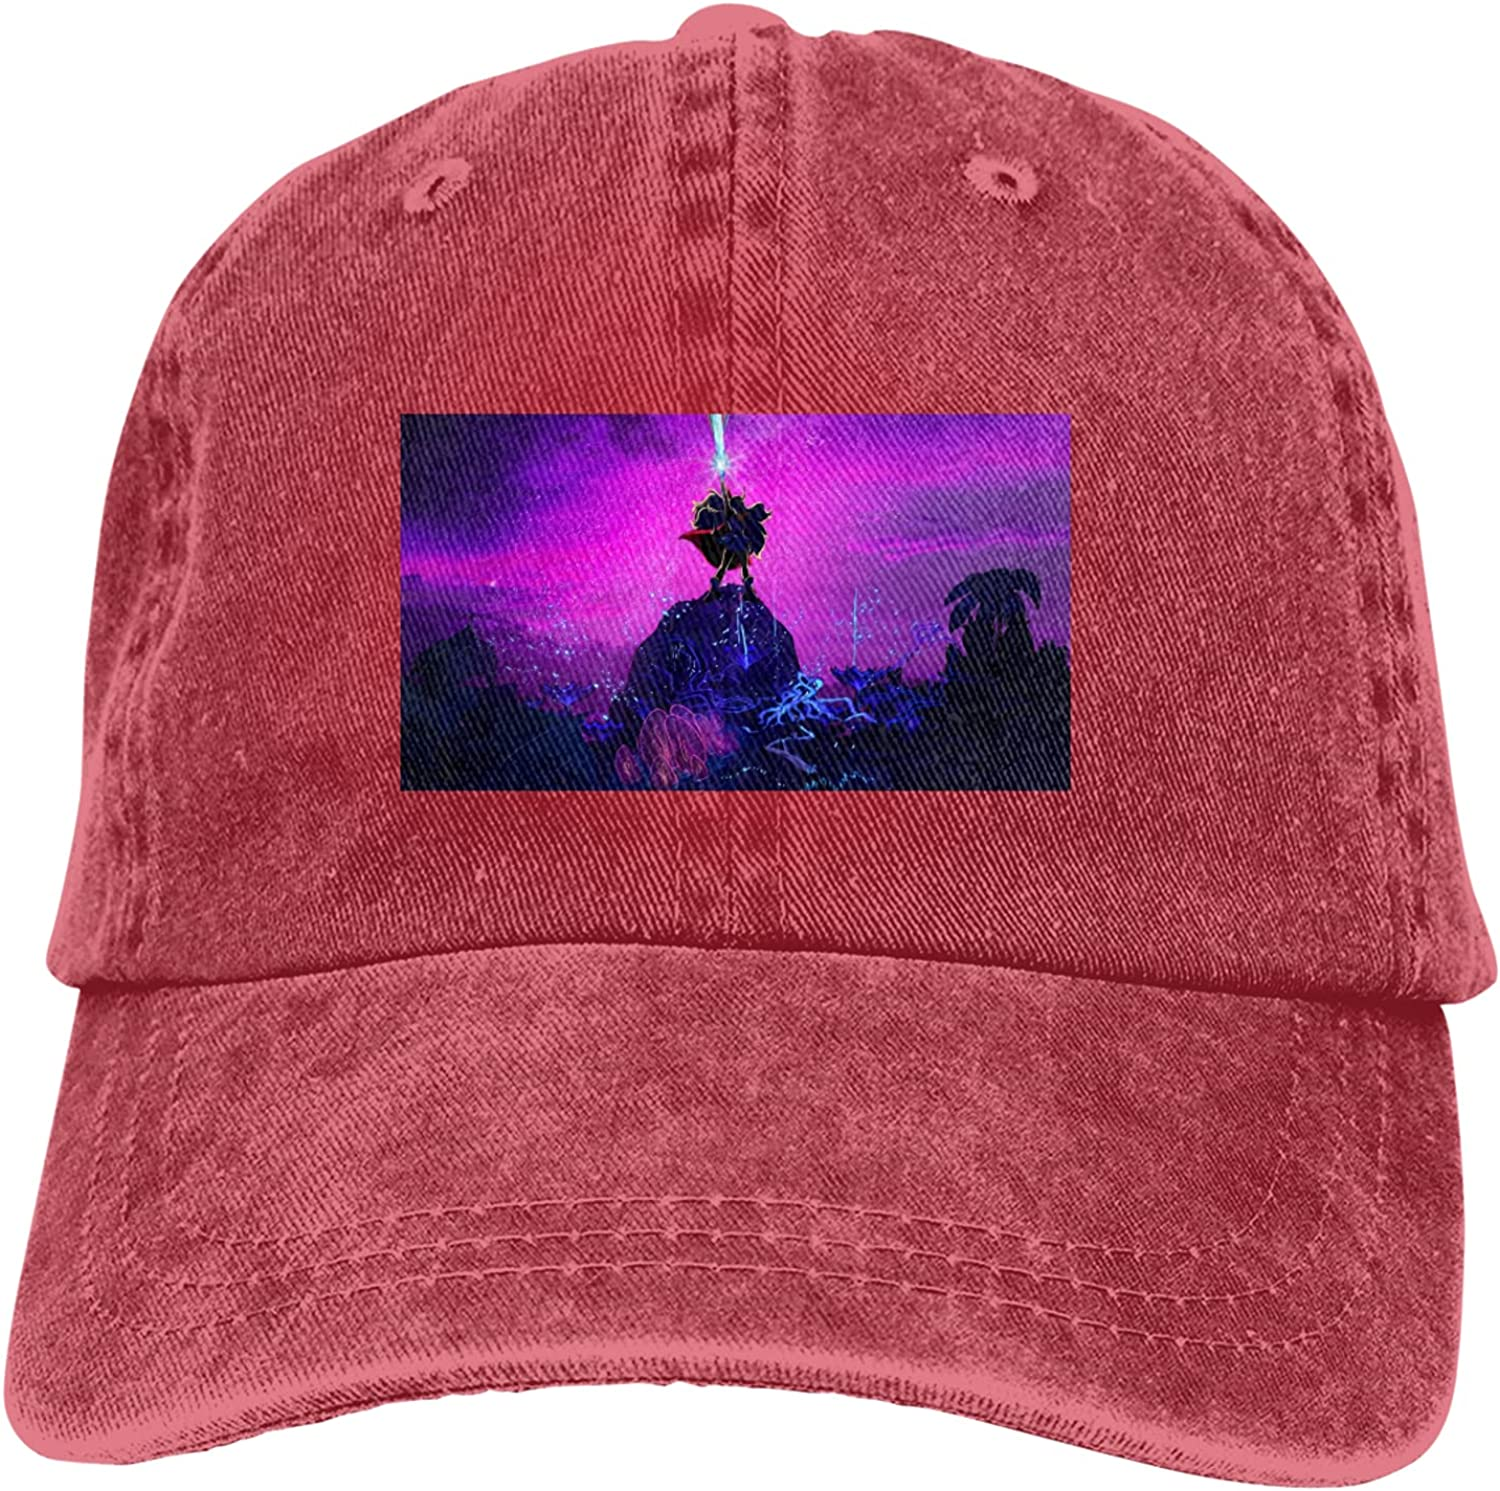 Fangpeilian She-Ra Adjustable Hat Fashion Cowboy Hat Baseball Cap, Suitable for Sports, Outdoor, Daily